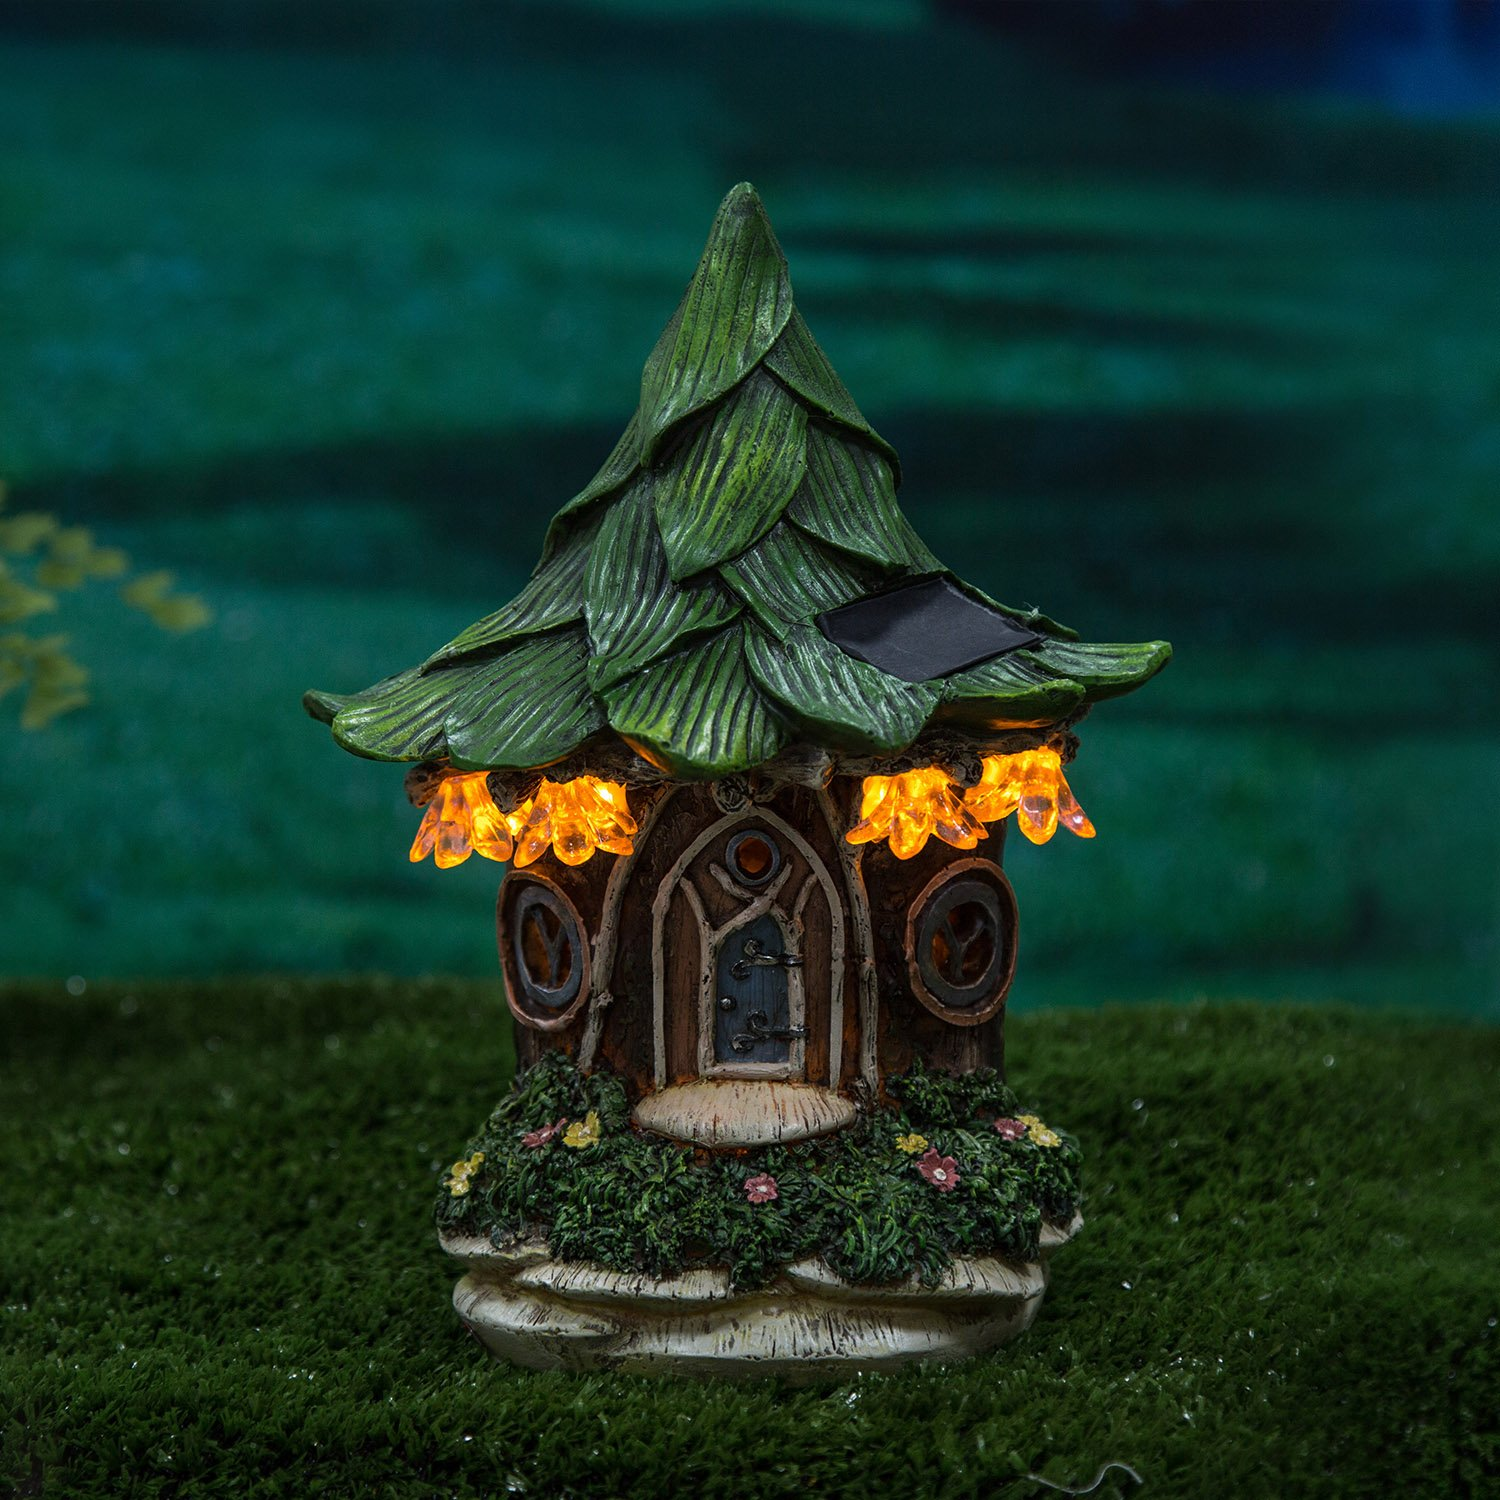 Ivy Home Solar Powered Garden Fairy Statues Tree Hanging Resin Fairy House by Ivy Home (Image #4)